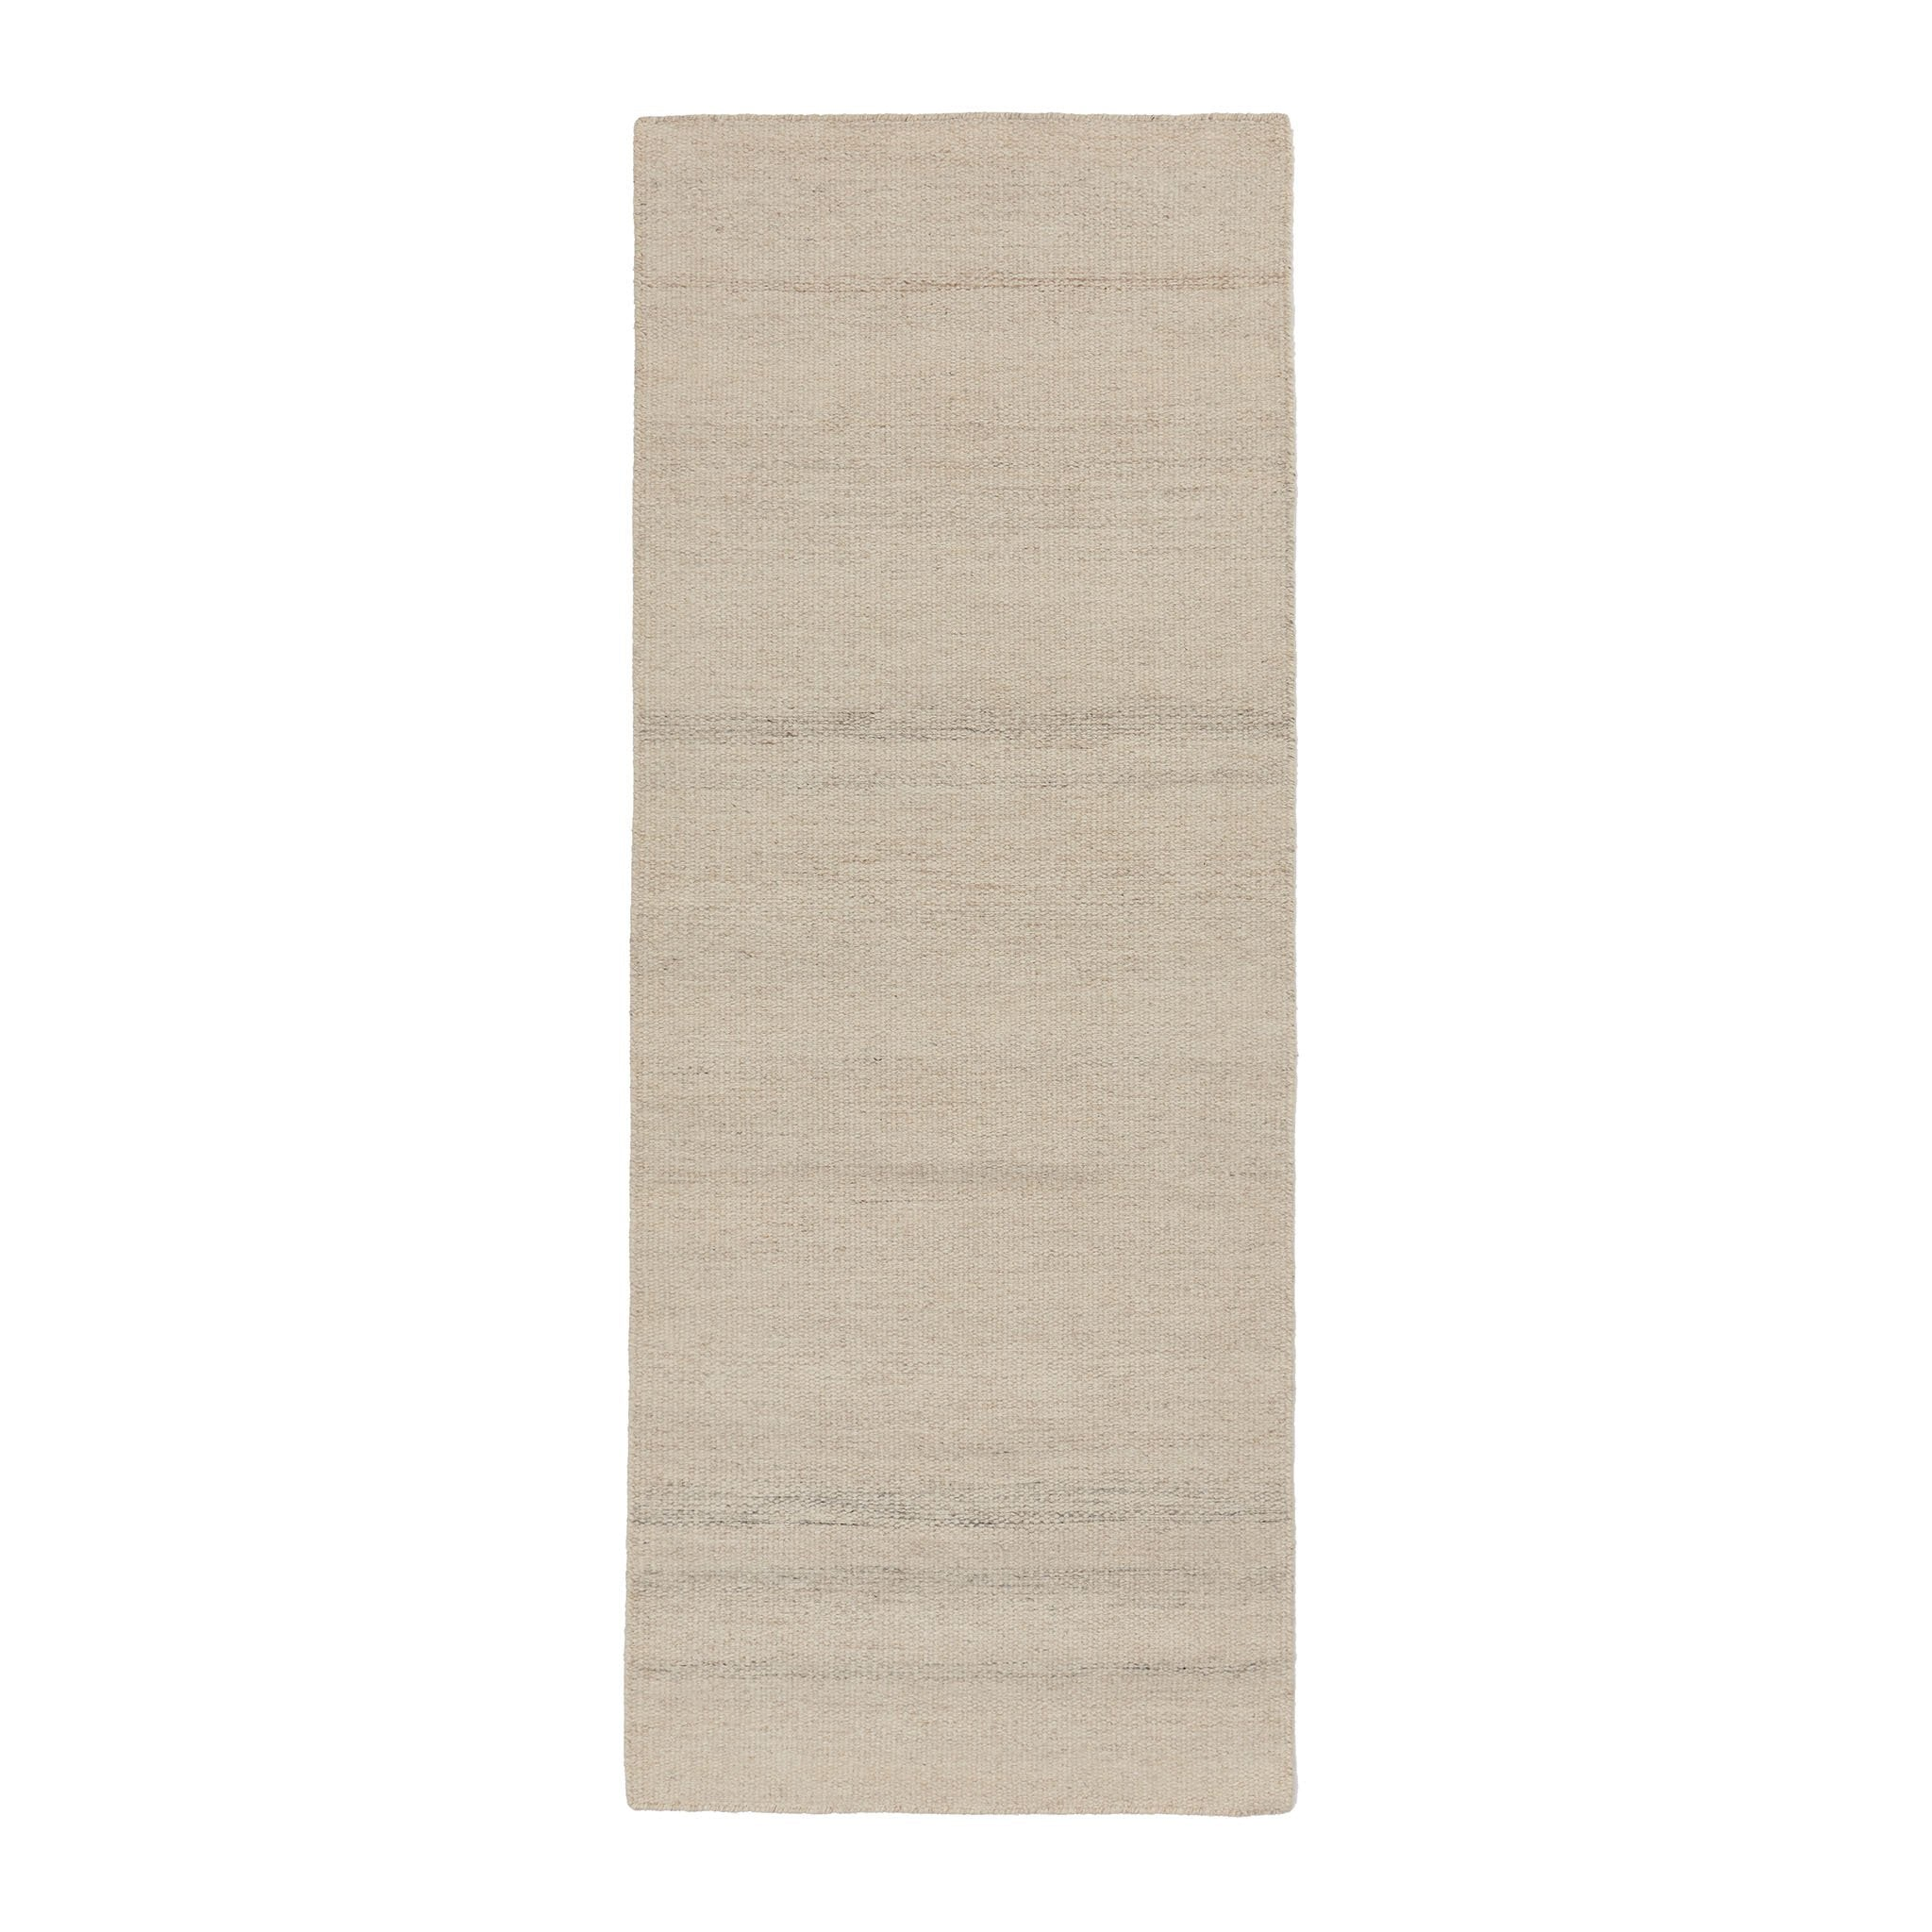 Patan Runner [Natural white]